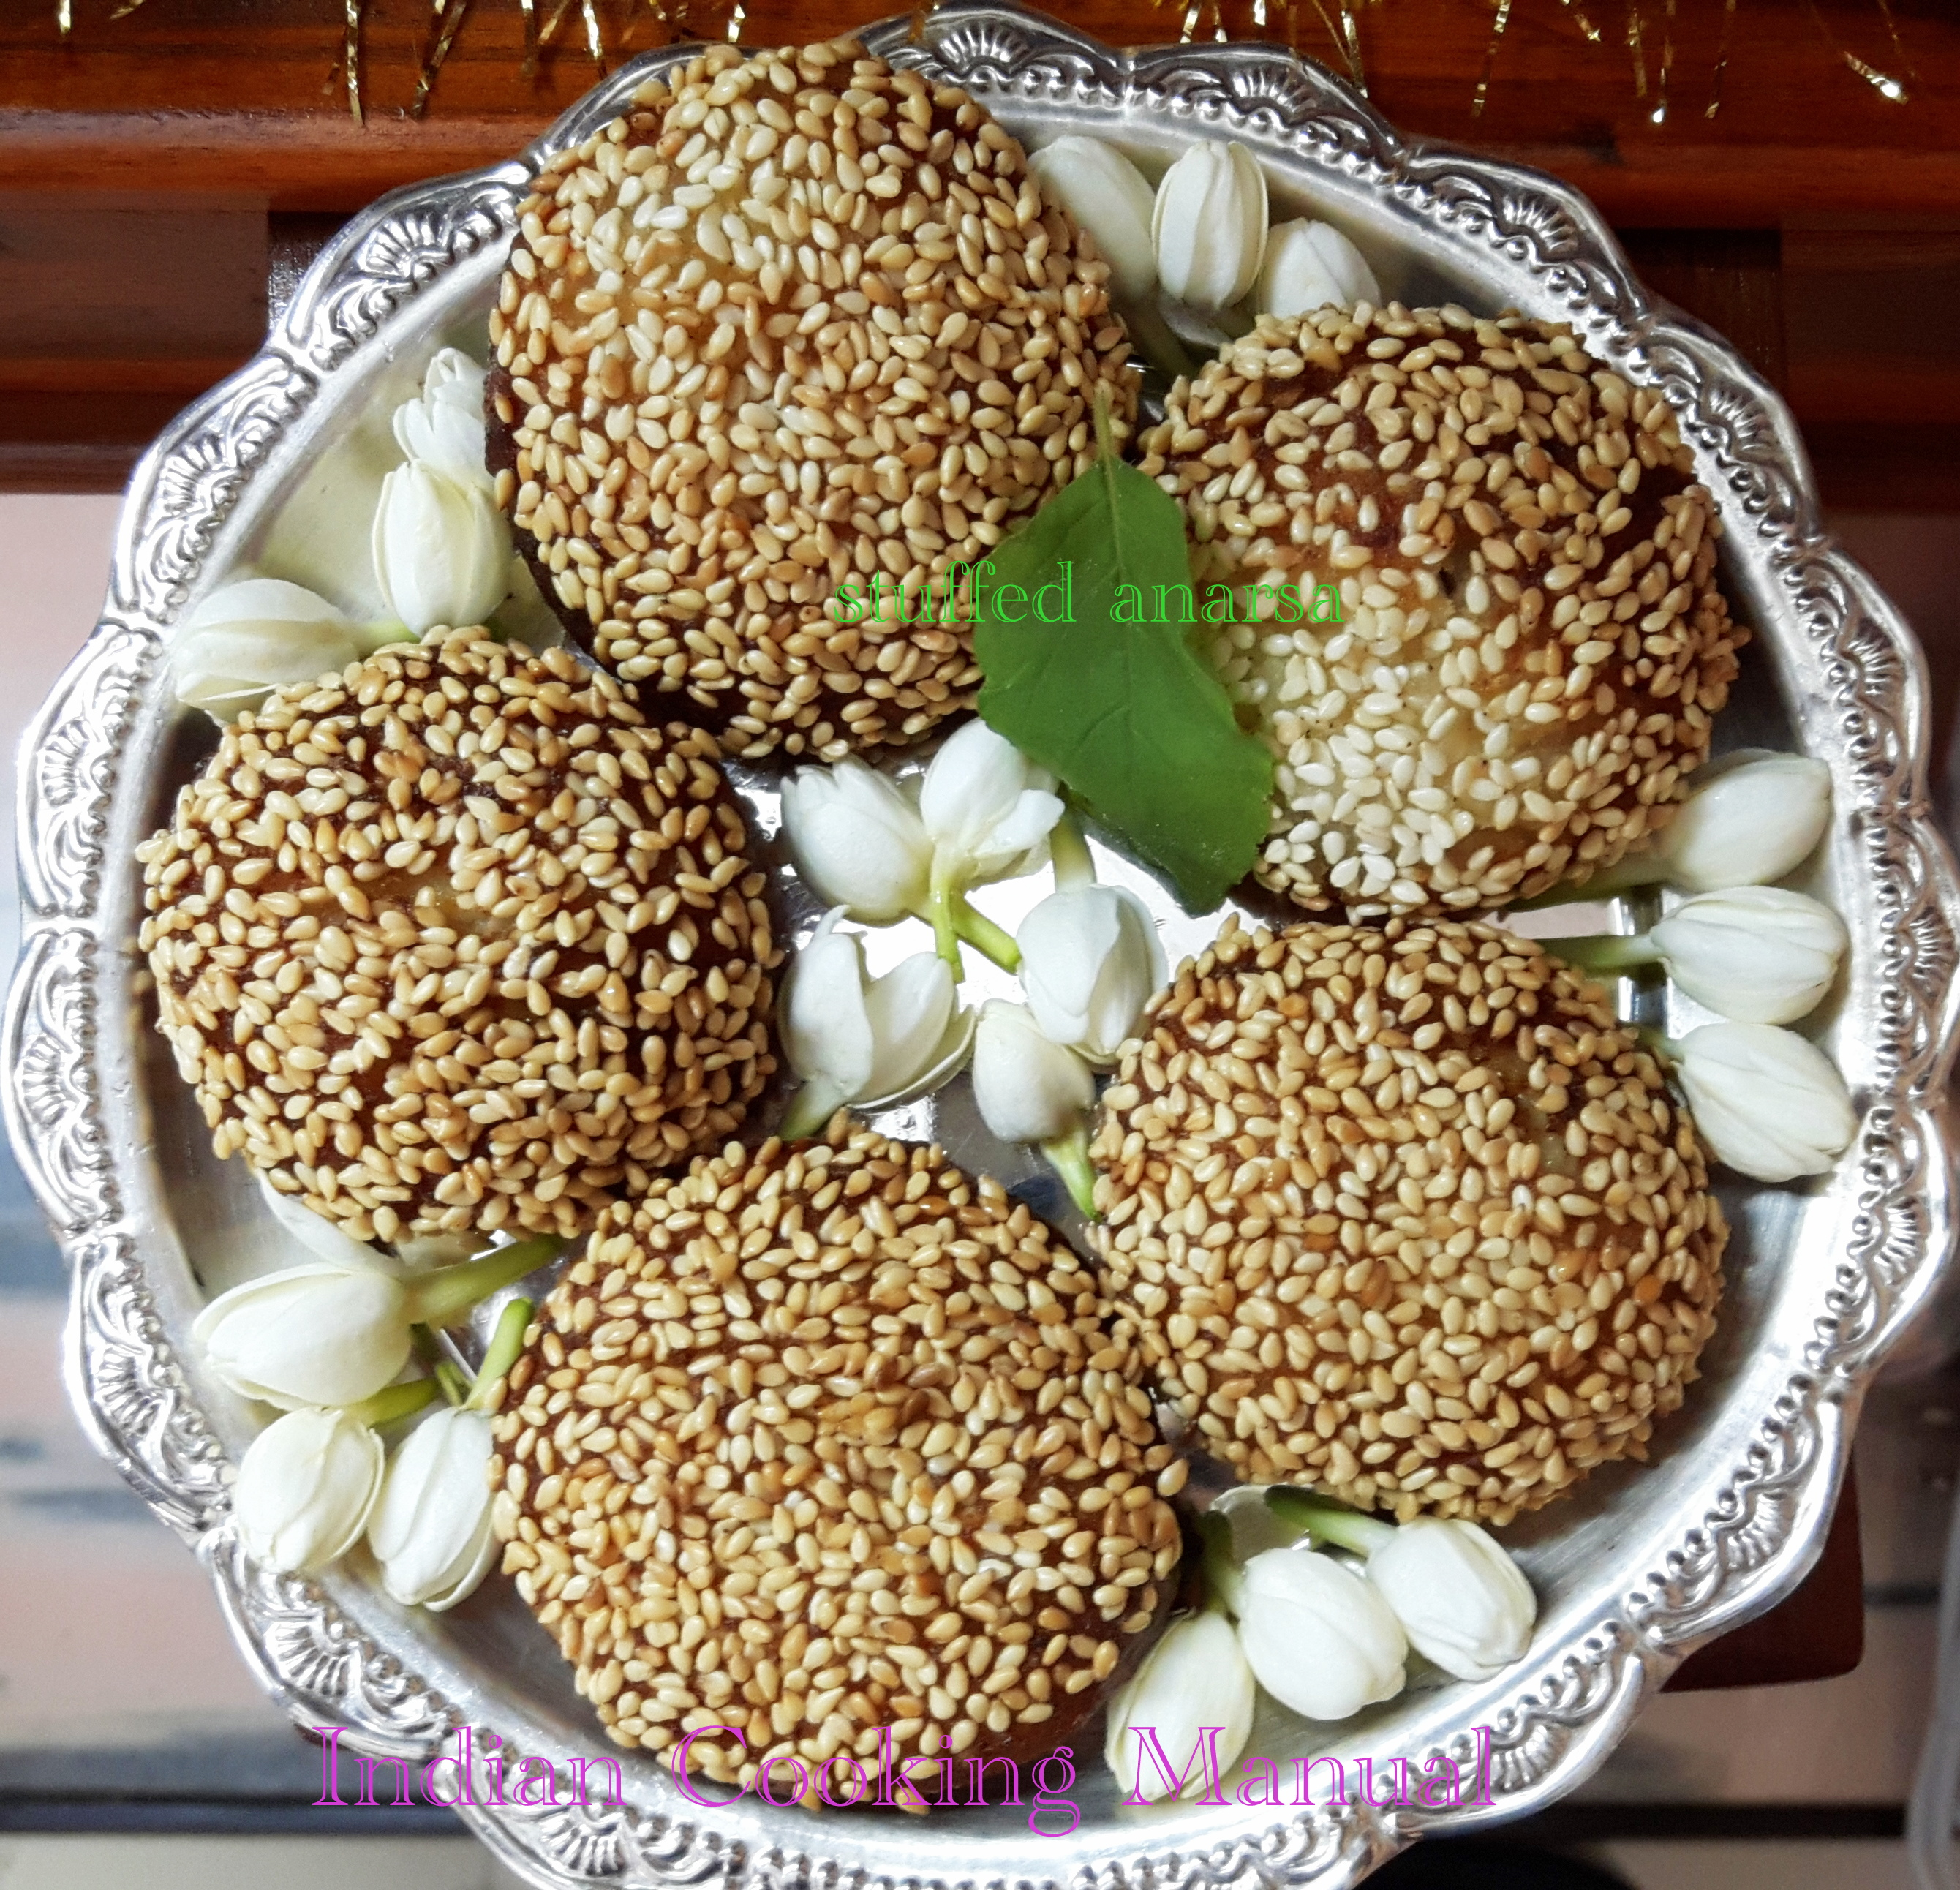 Stuff Khoa/Mawa anarsa (sweets)